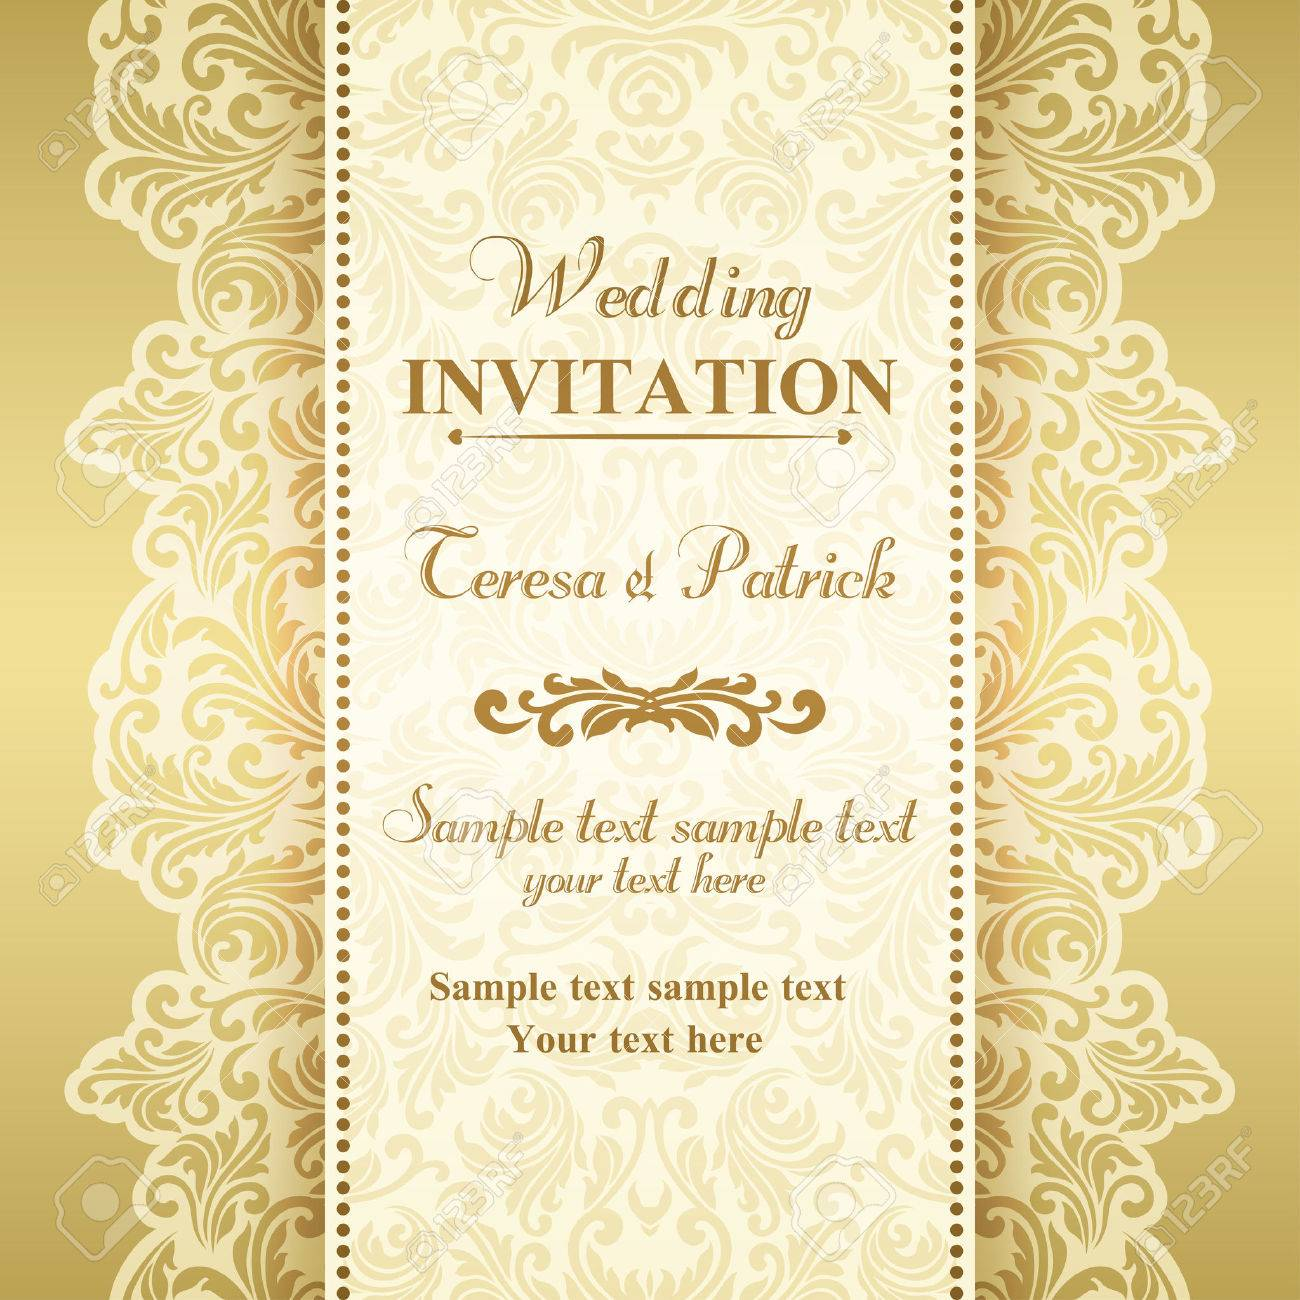 Baroque wedding invitation card in old fashioned style gold baroque wedding invitation card in old fashioned style gold and beige stock vector stopboris Images